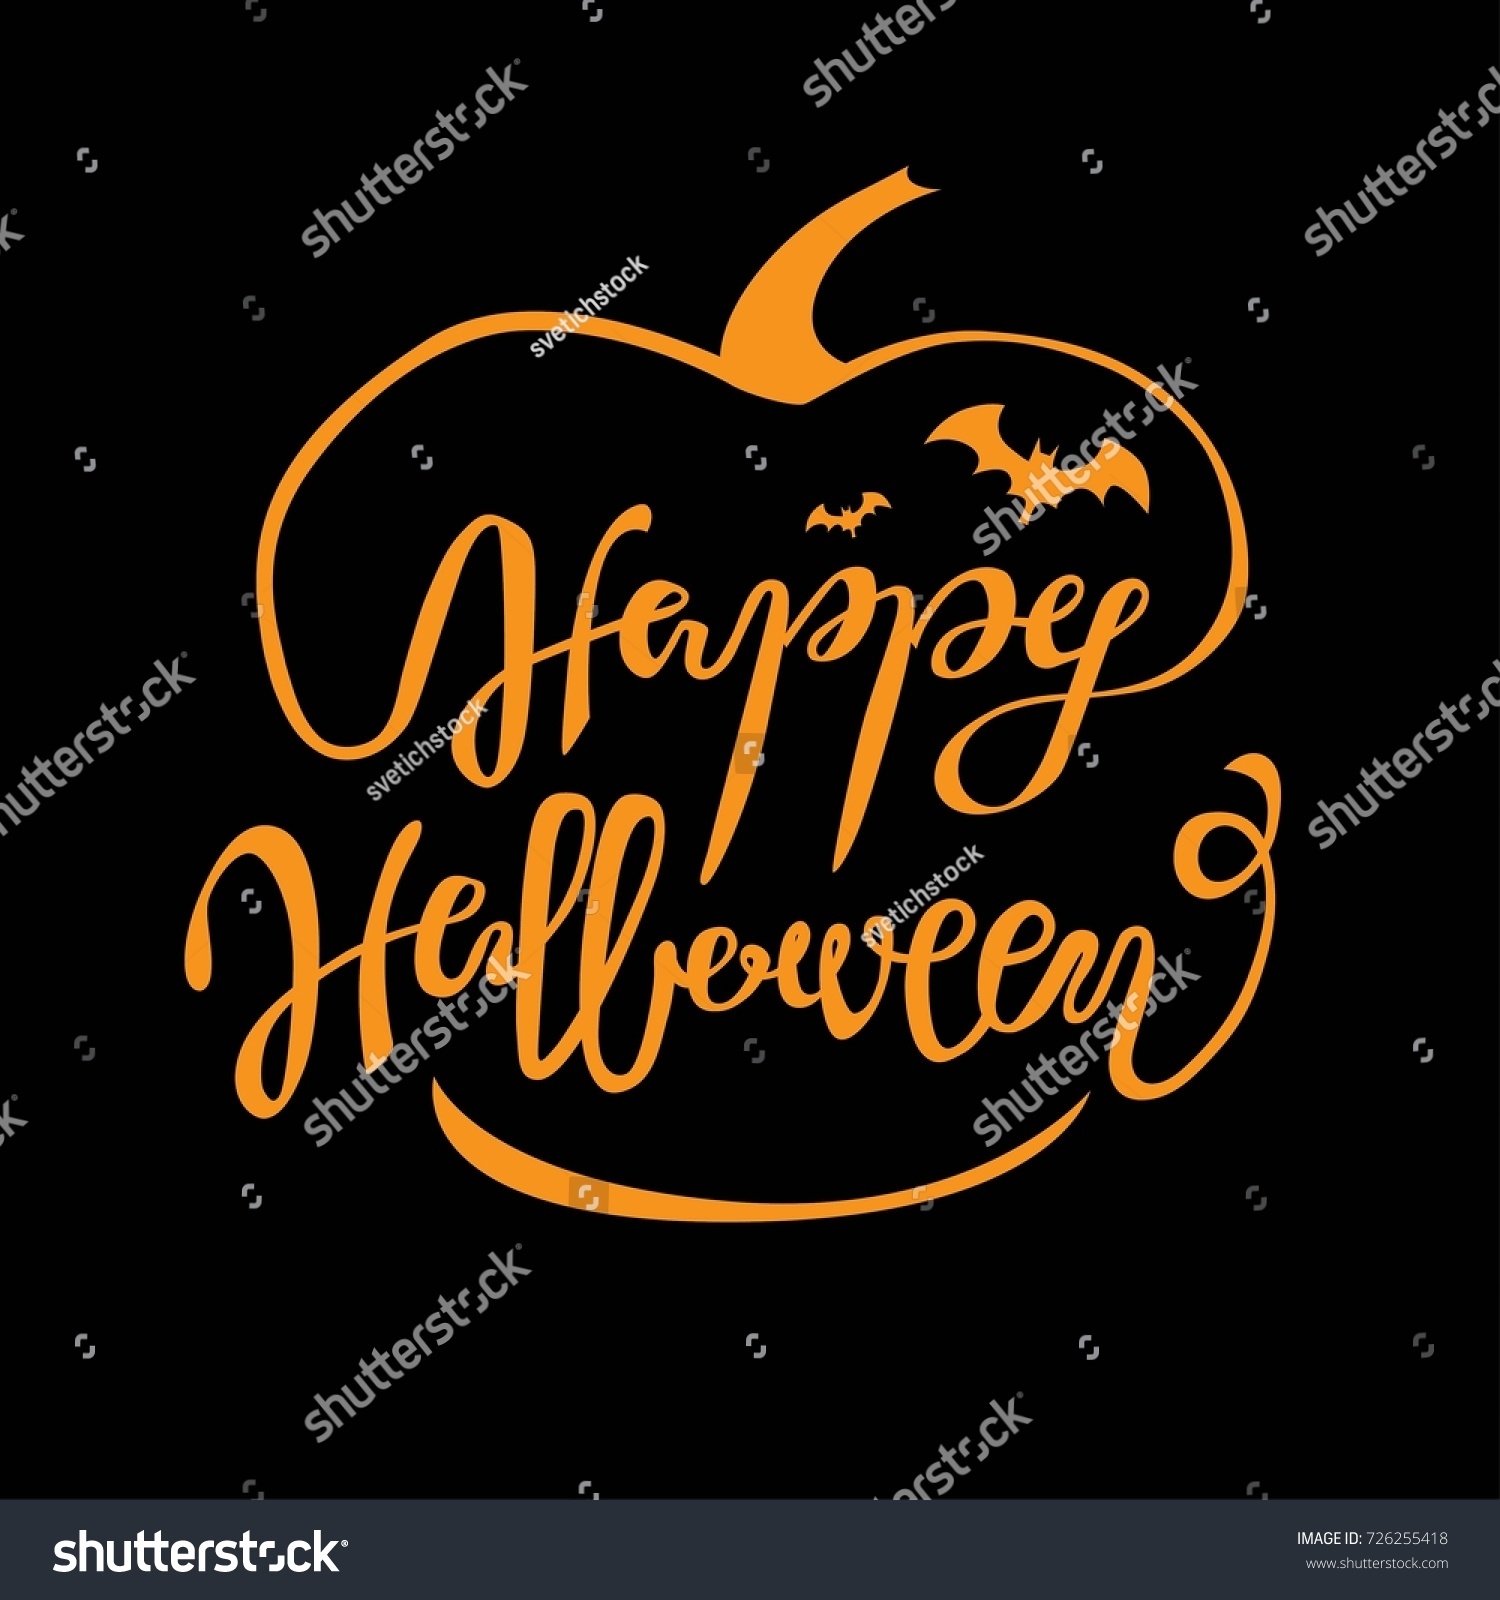 Happy halloween greeting card lettering cards stock vector happy halloween greeting card lettering for cards or posters kristyandbryce Images